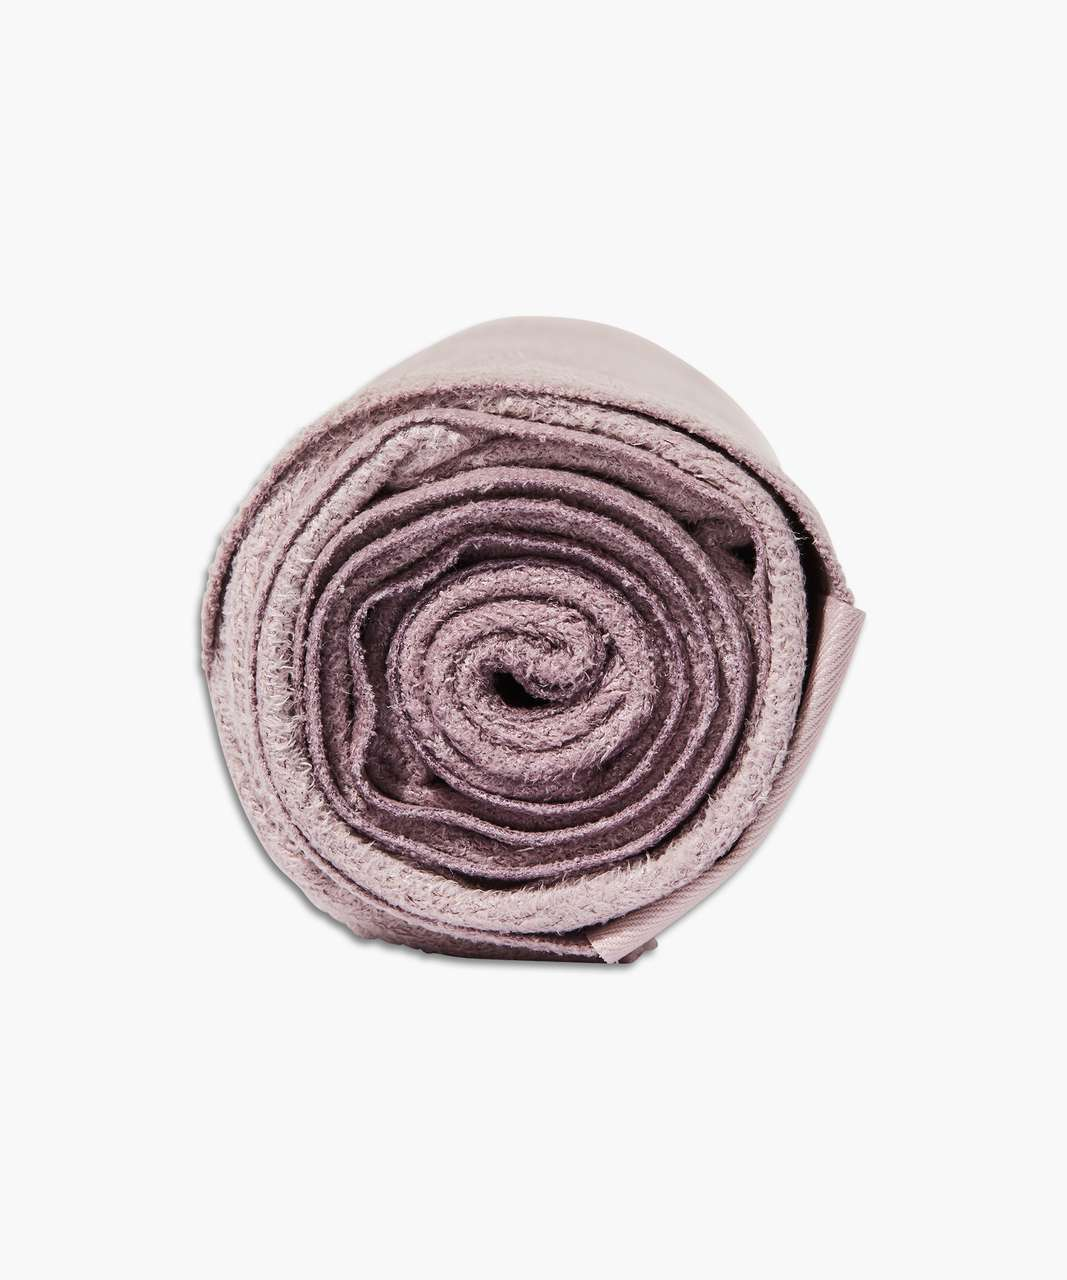 Lululemon The (Small) Towel (Taryn Toomey Collection) - Taryn Toomey Towel Porcelain Pink Misty Mauve